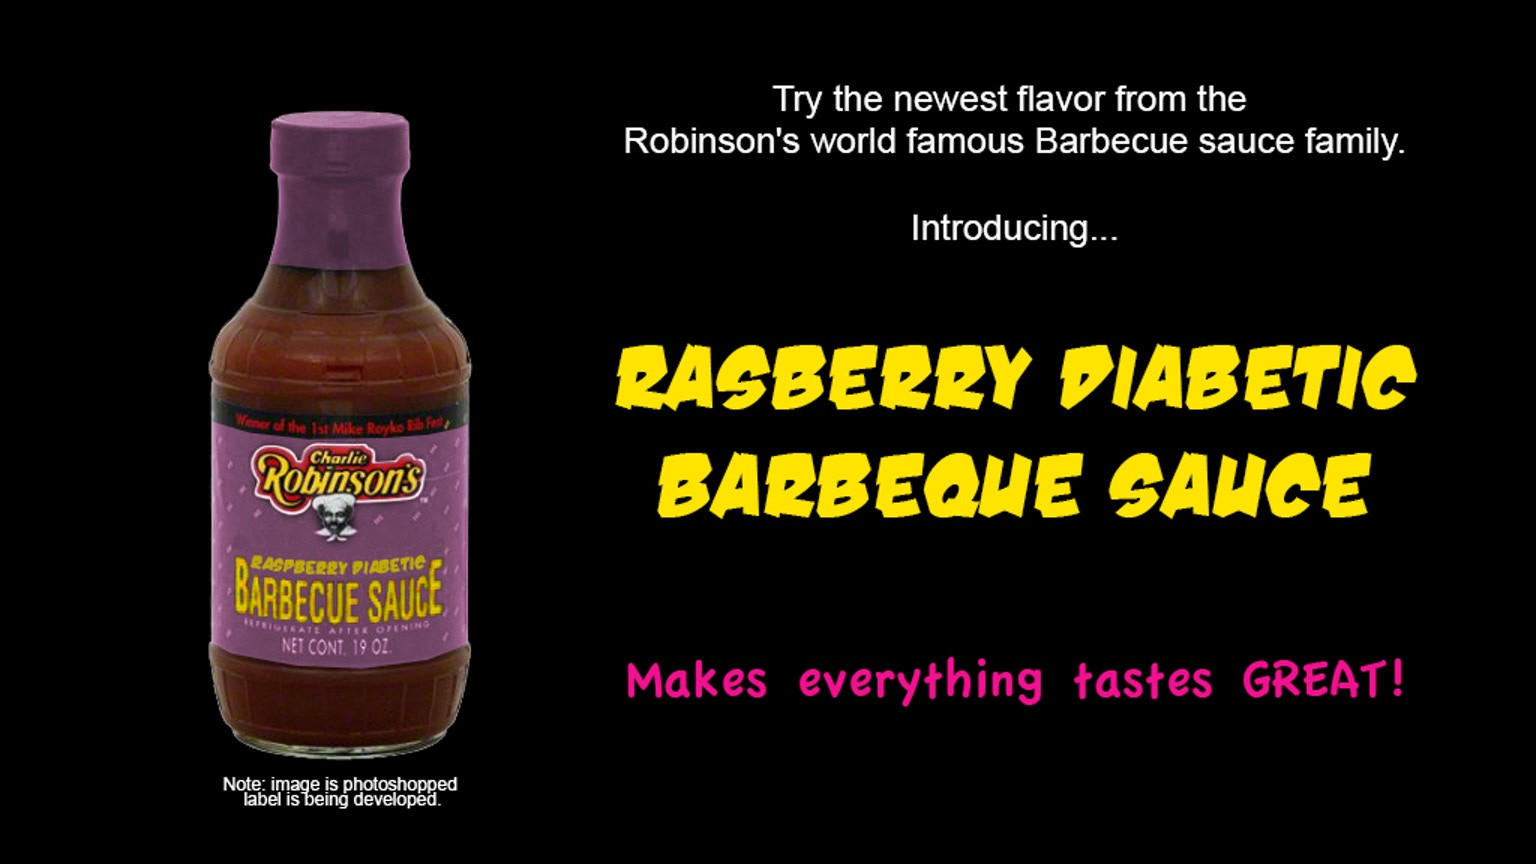 Bbq Sauce For Diabetics  Rasberry Diabetic Barbecue Sauce by Charlie Robinson